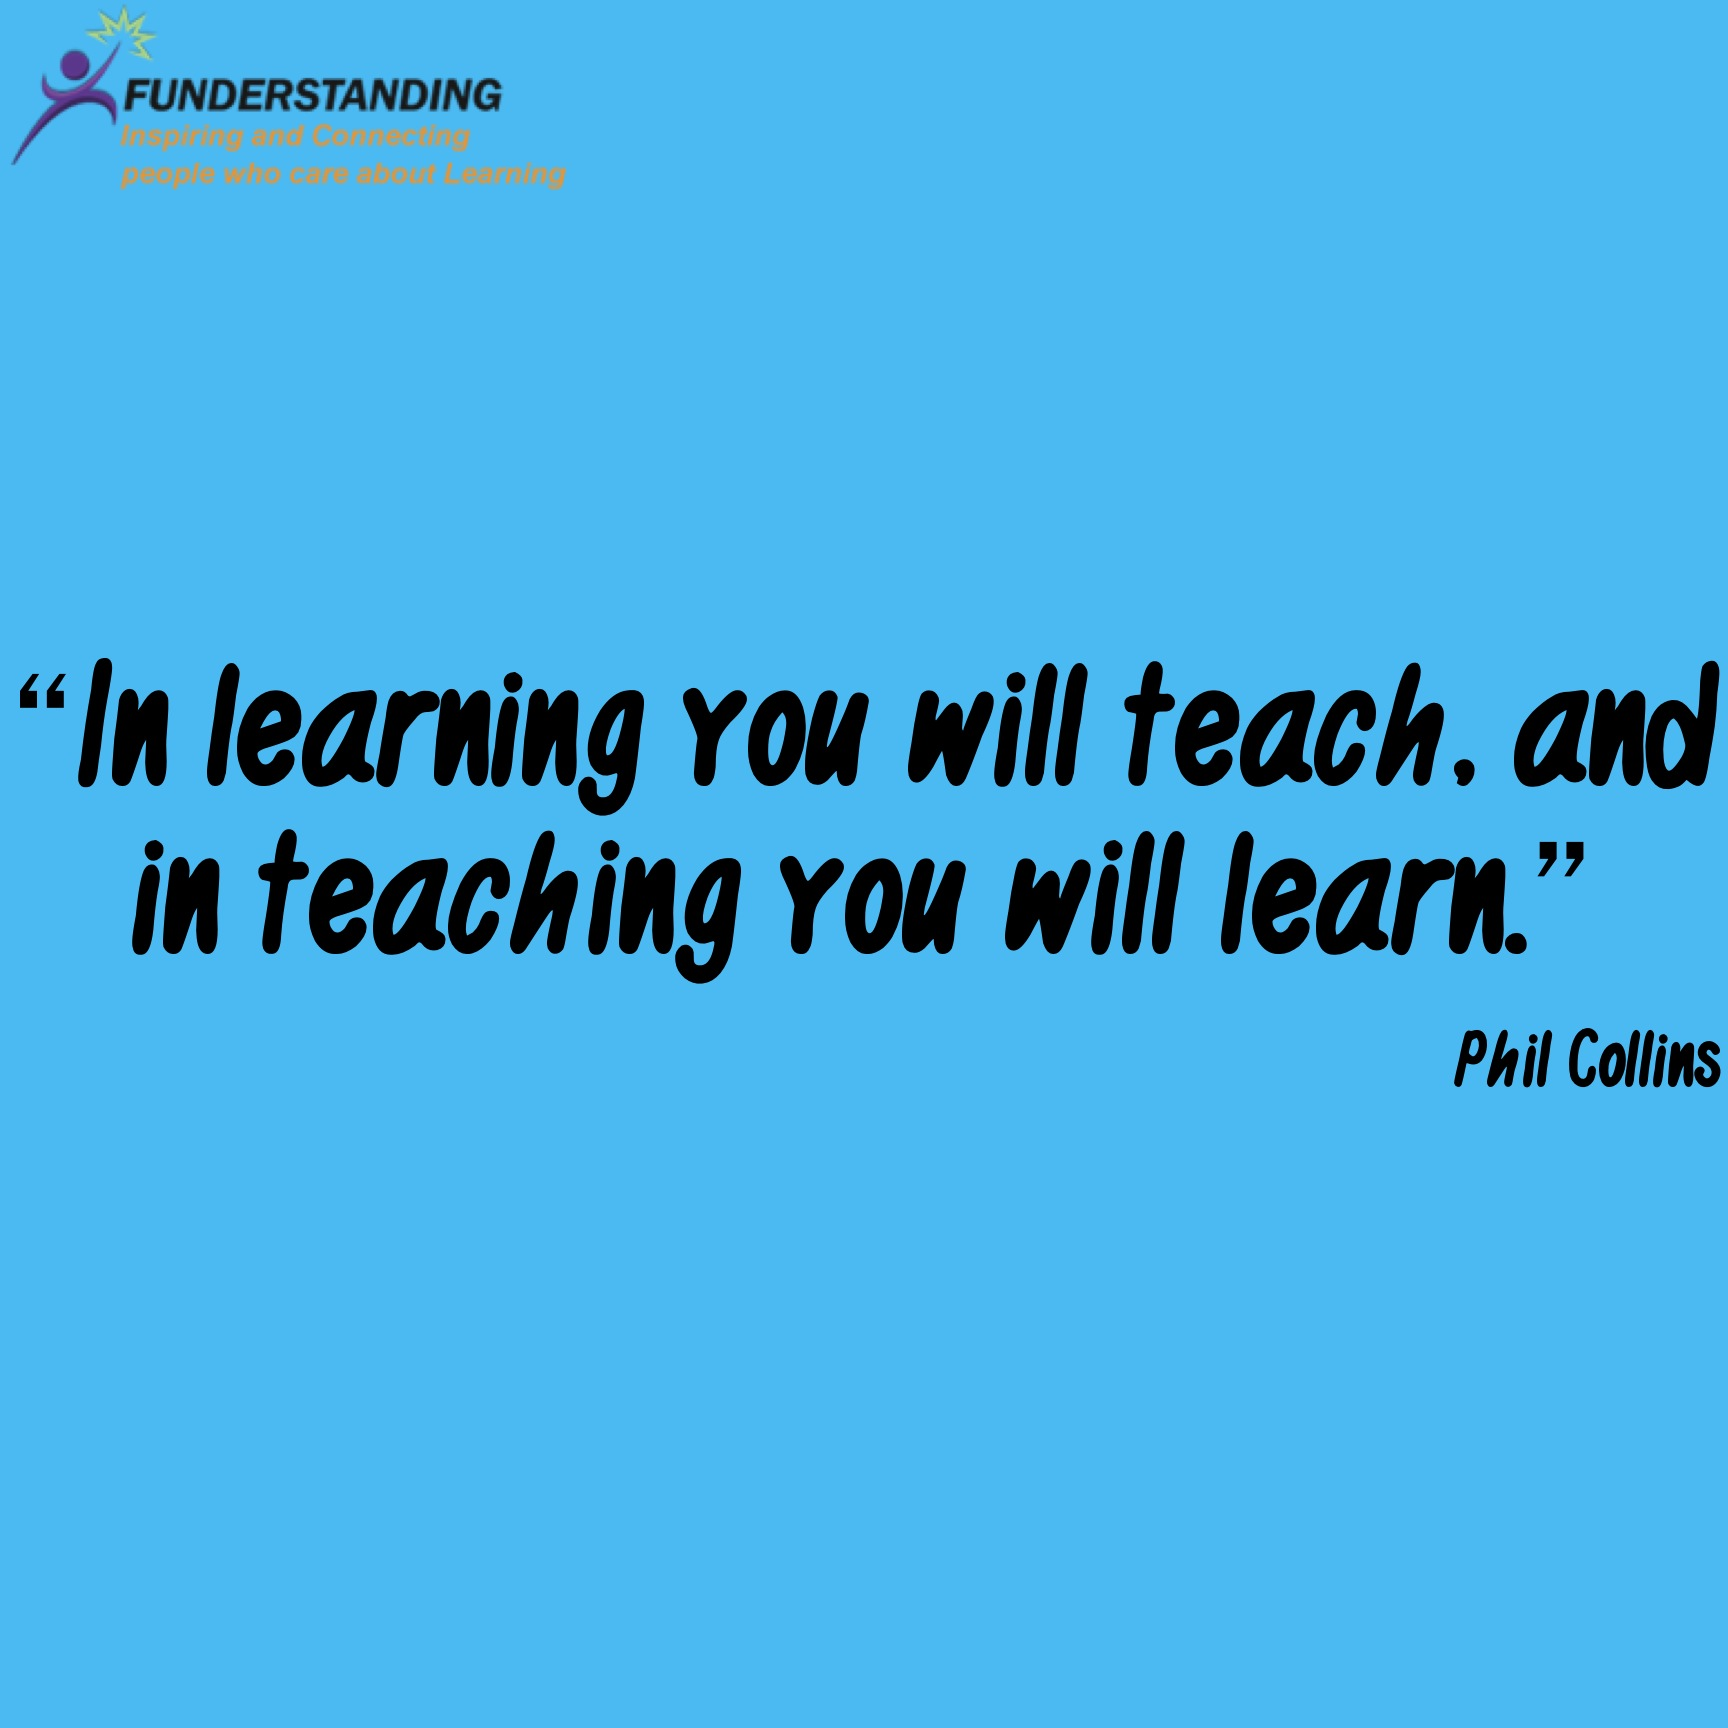 Teaching Quotes Educational Quotes  Funderstanding Education Curriculum And